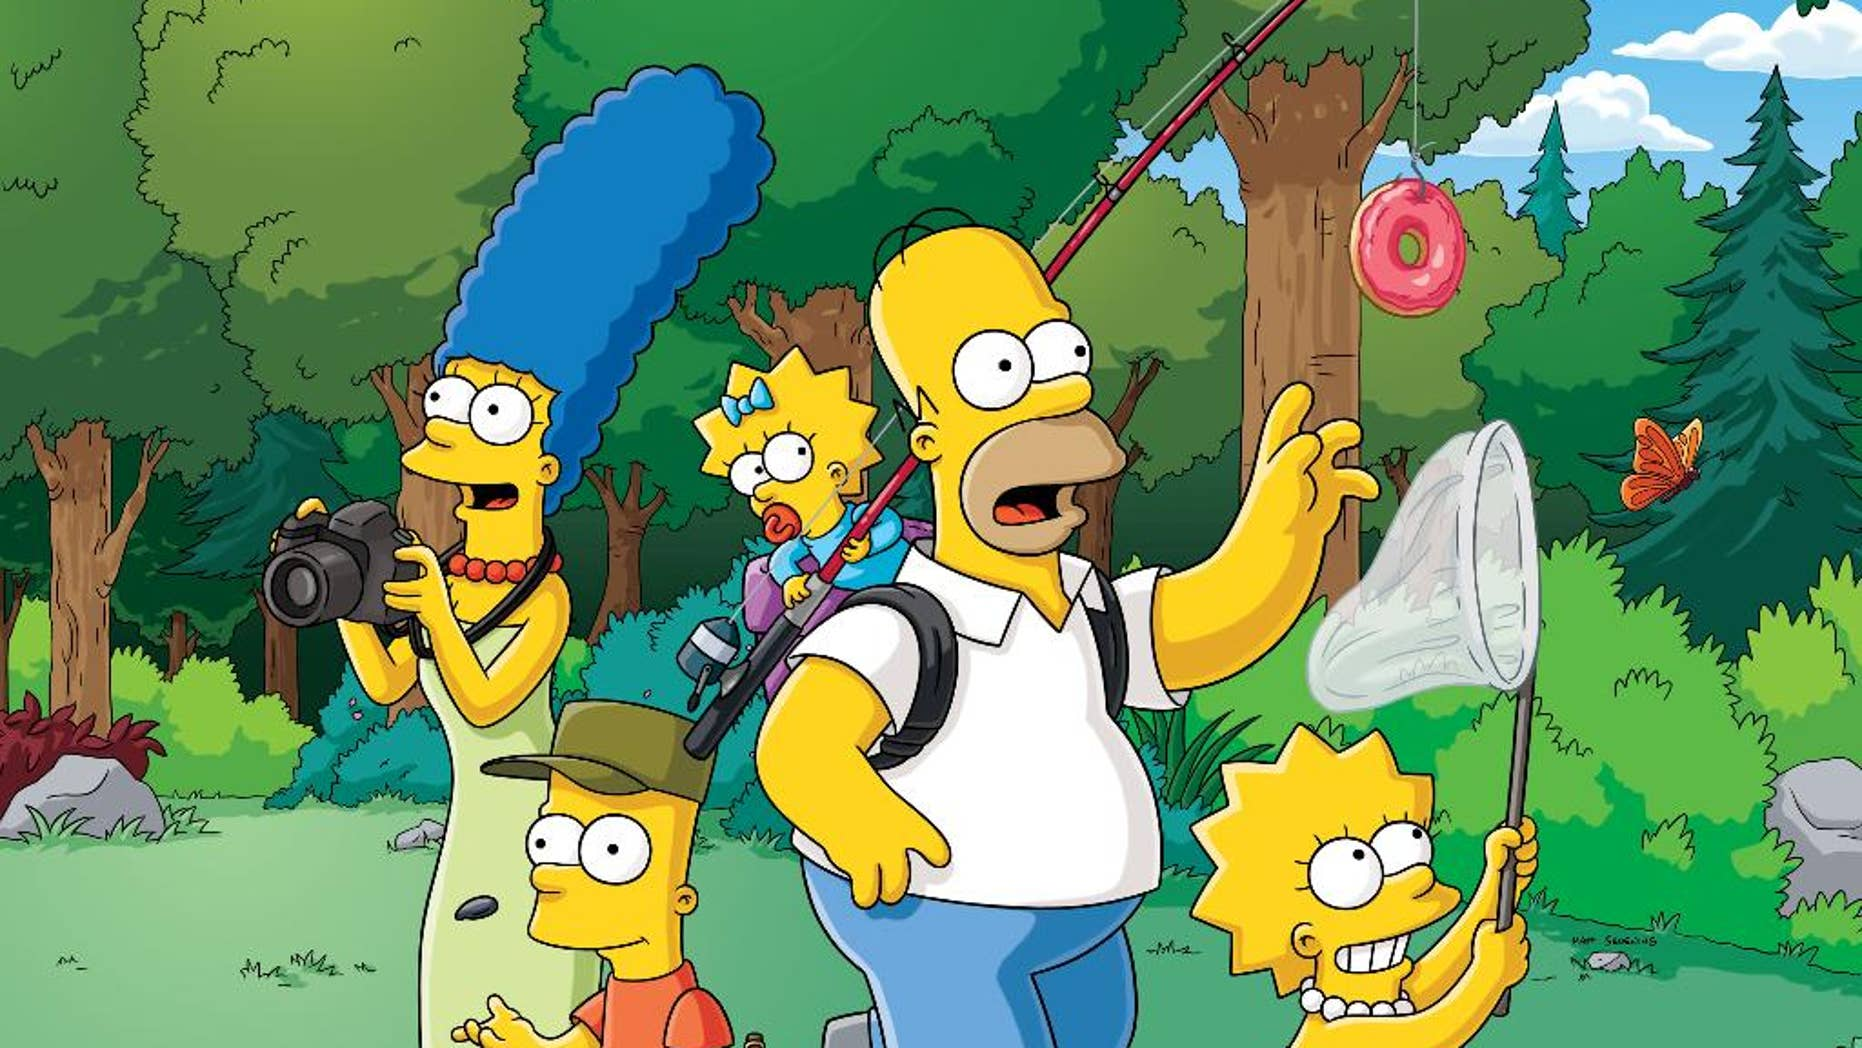 No d'oh about it: Fox renews 'The Simpsons' for 2 more seasons, a